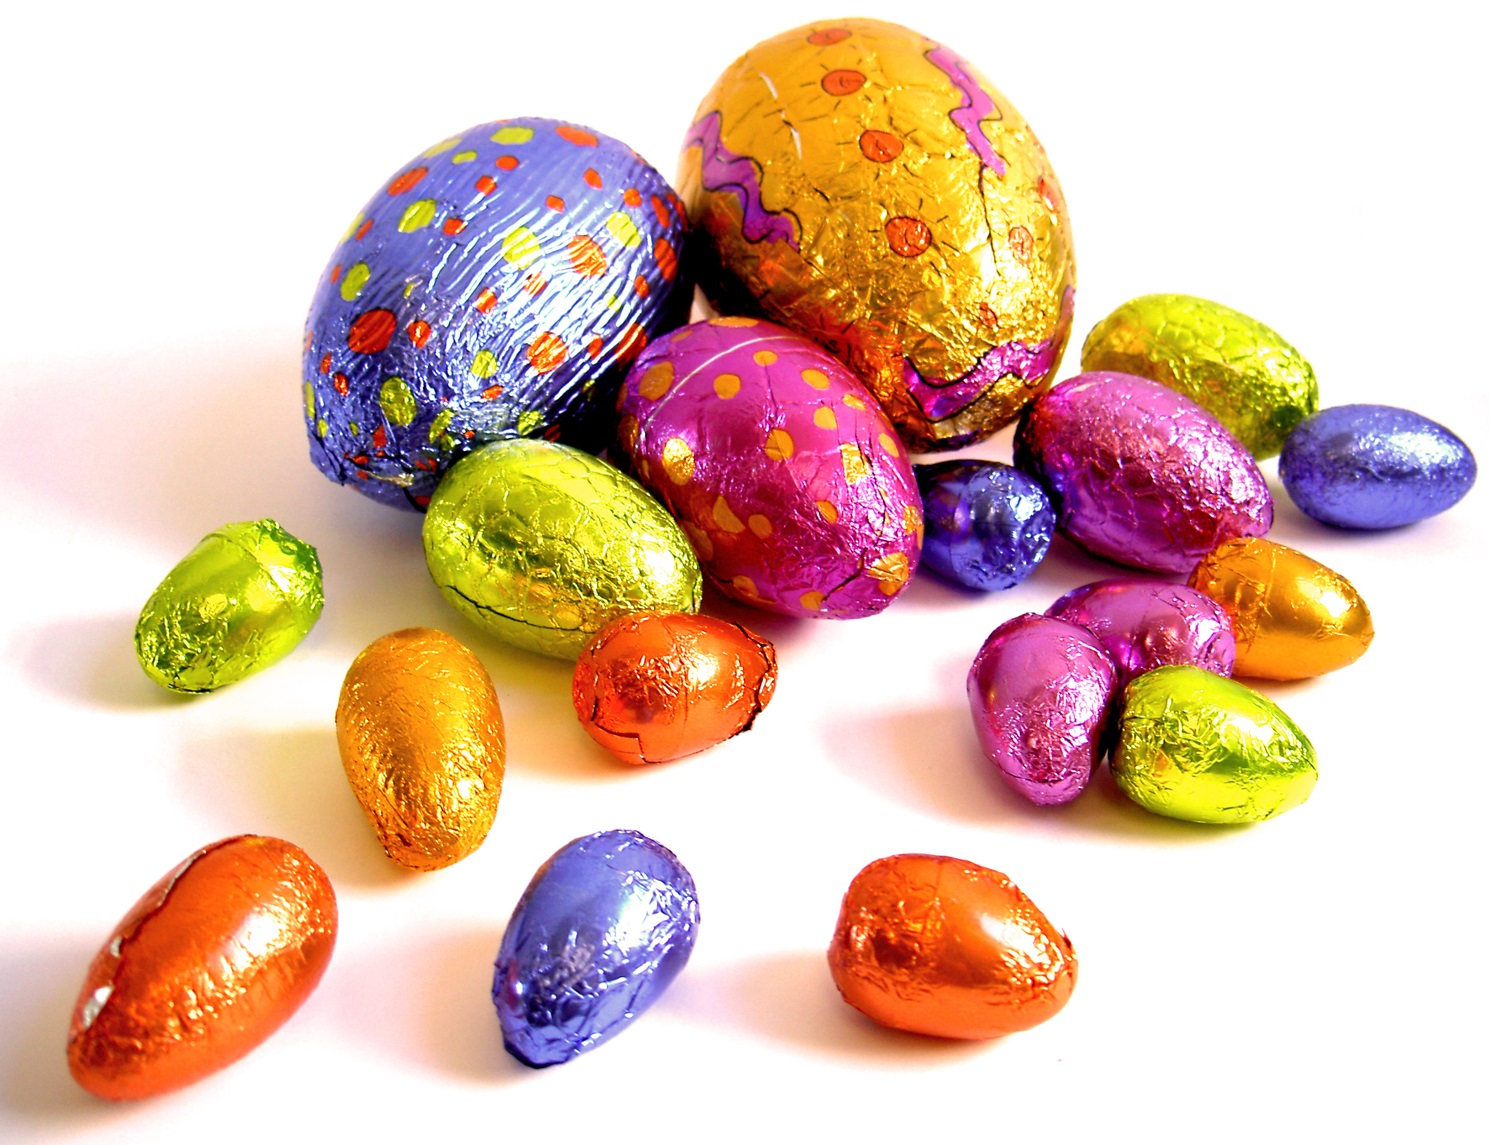 Easter - chocolate eggs in foil